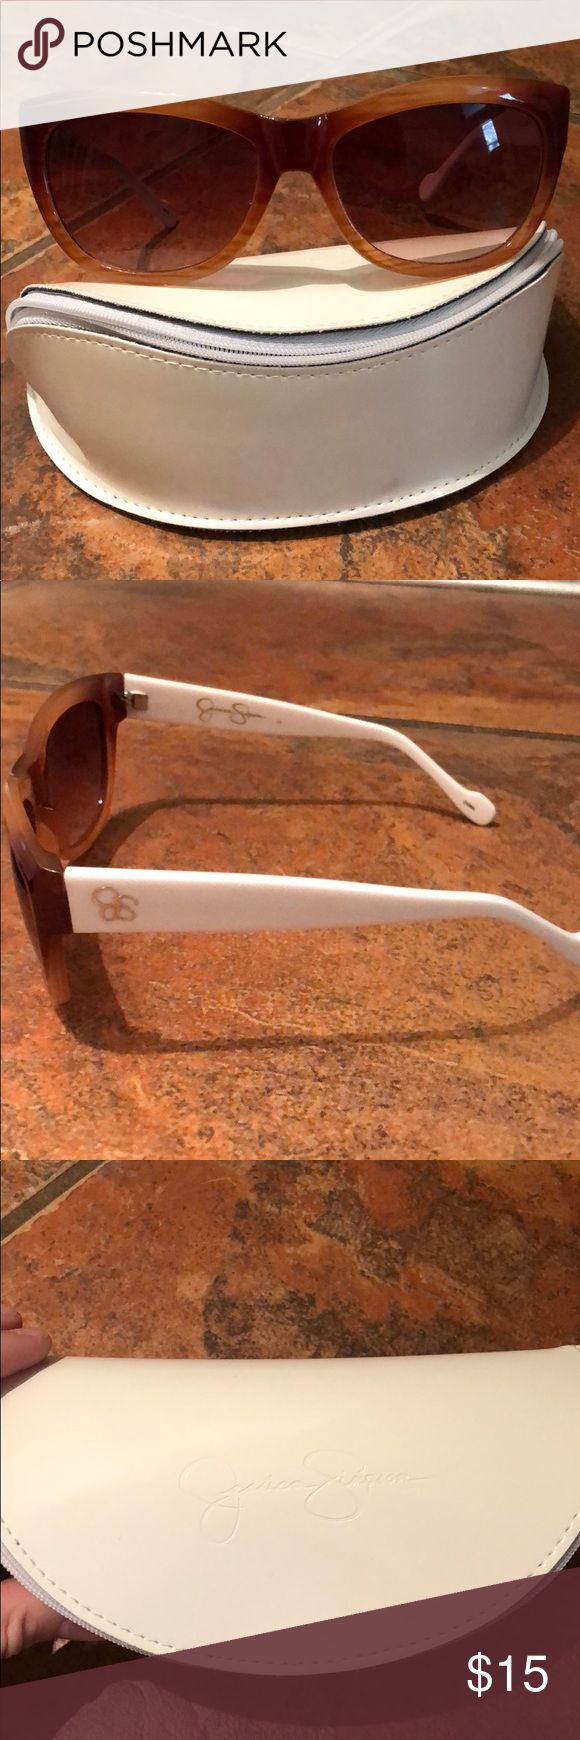 Jessica Simpson Sunglasses with case NWOT two tone sunglasses White and brown with brown tinted lenses Jessica Simpson Accessories Sunglasses